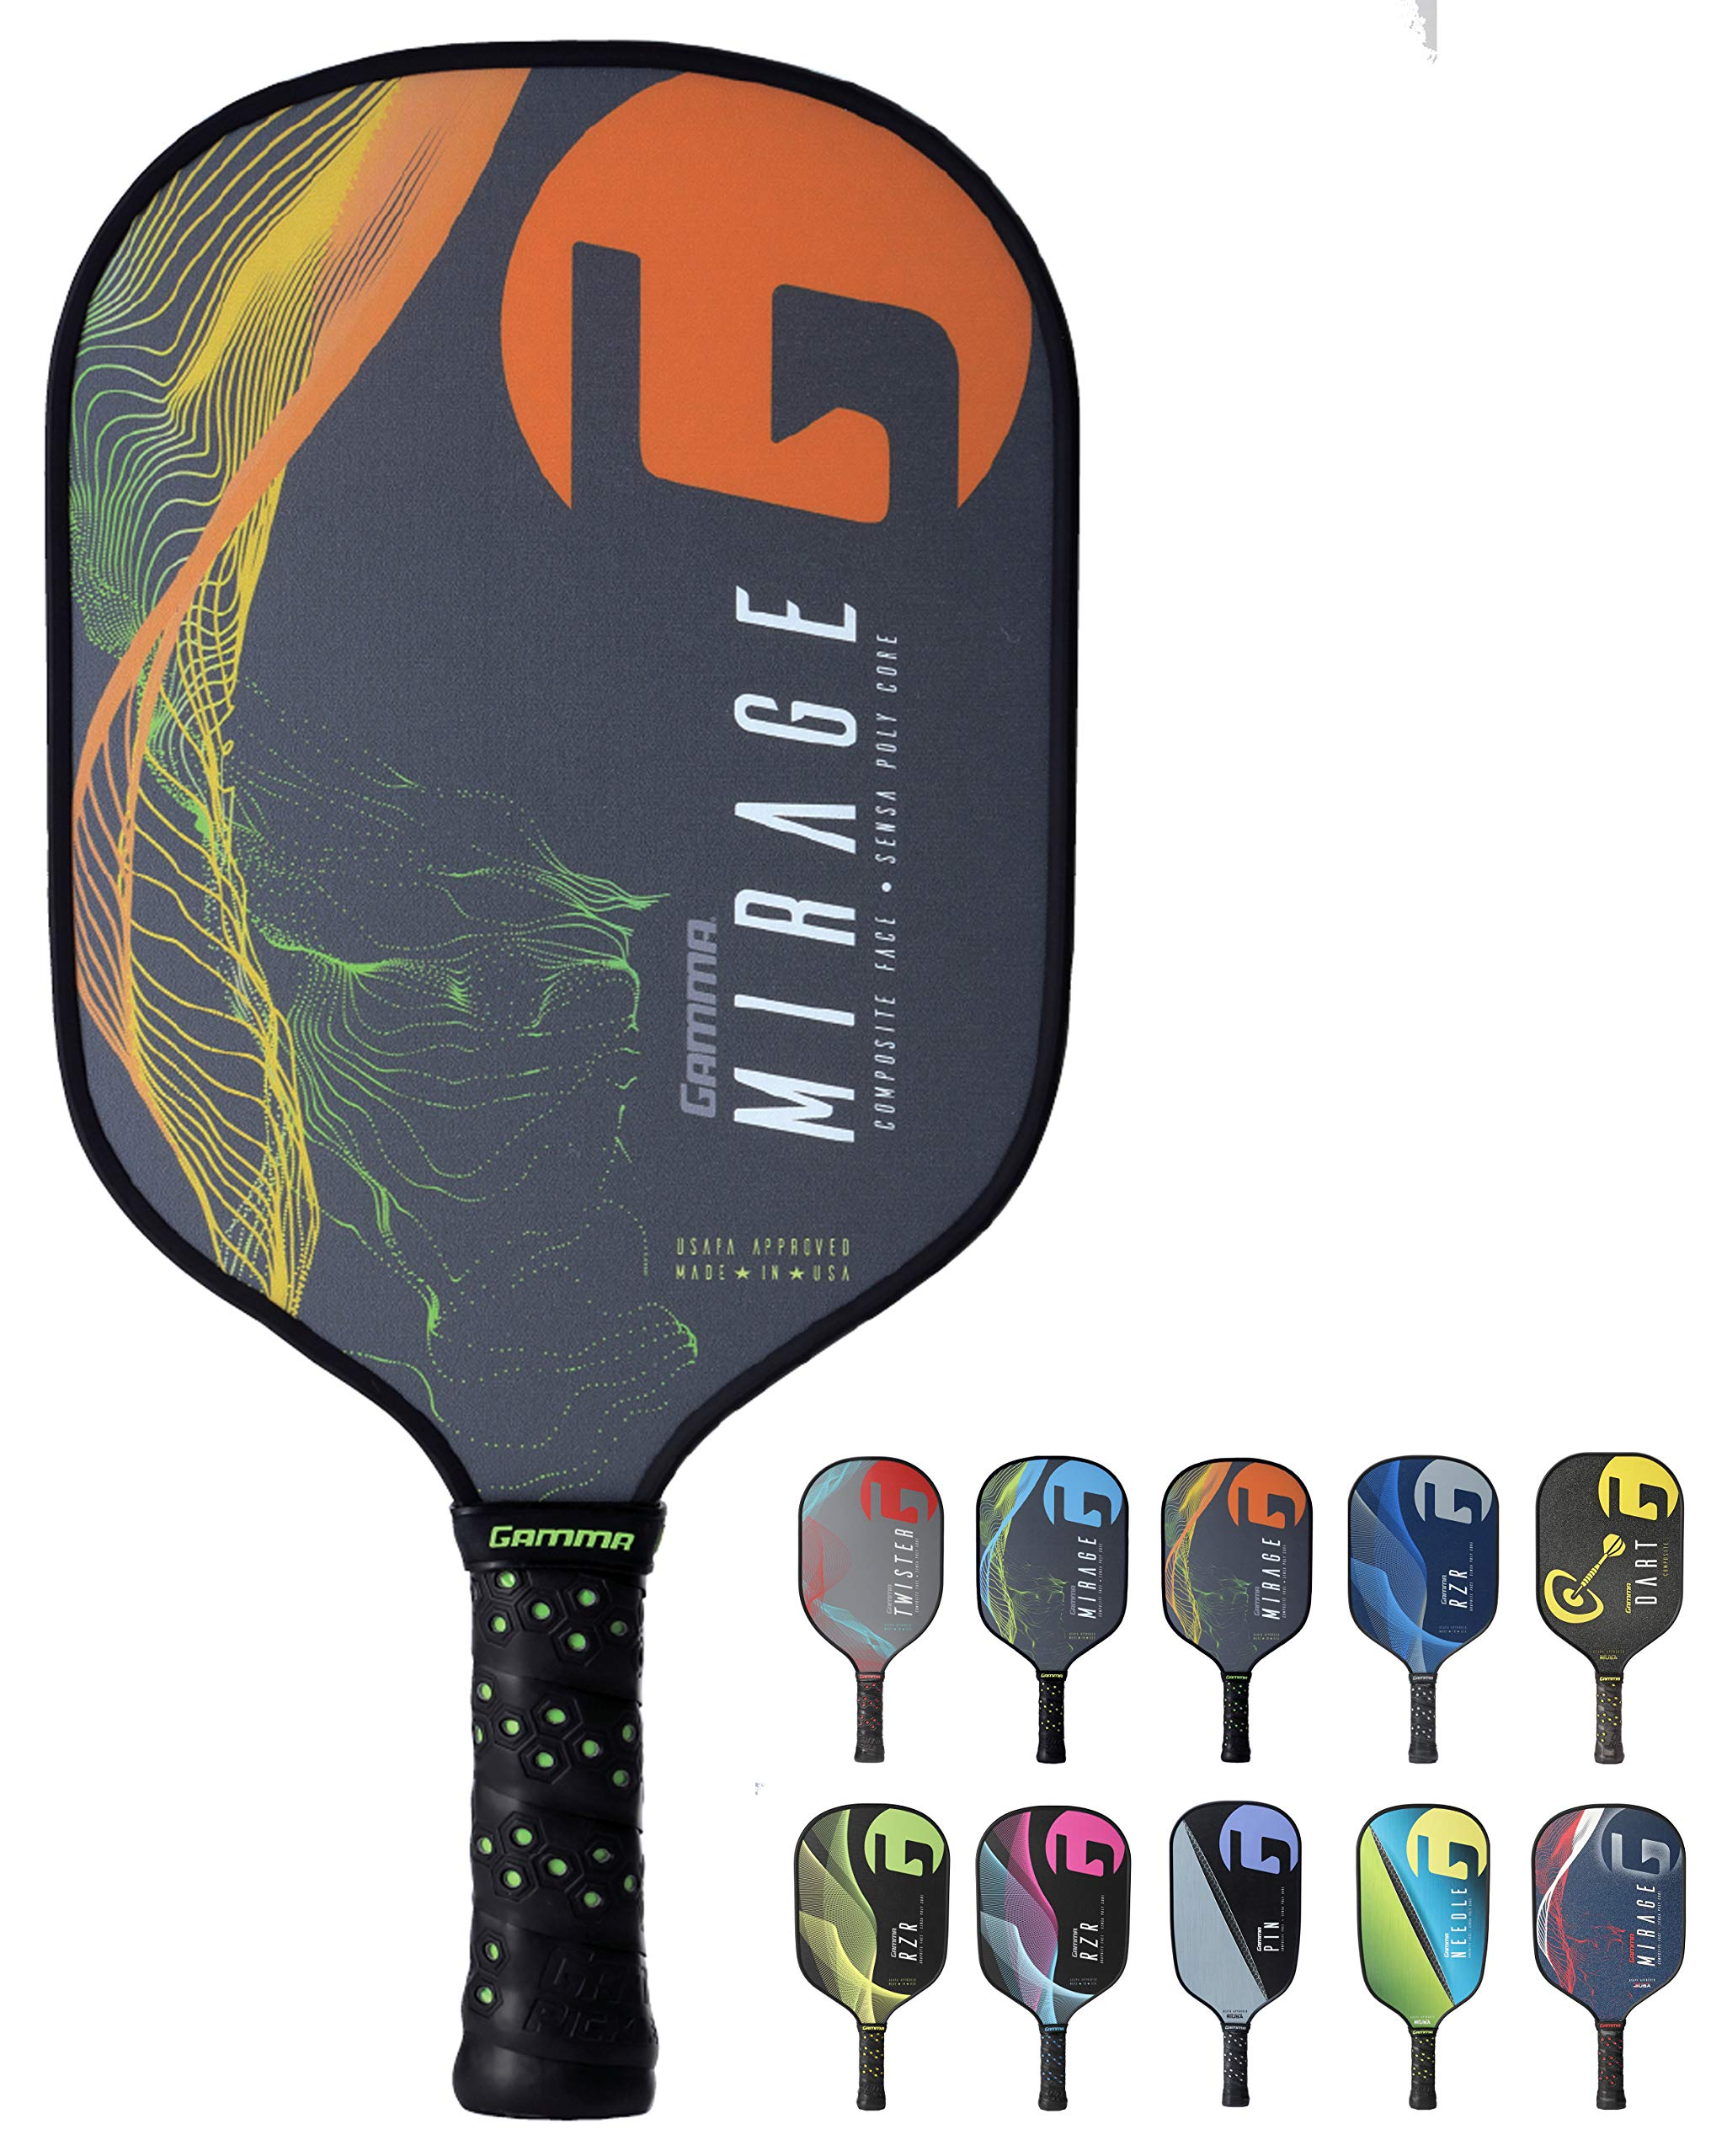 Gamma Mirage Composite Pickleball Paddle: Pickle Ball Paddles for Indoor & Outdoor Play - USAPA Approved Racquet for Adults & Kids - Orange/Green